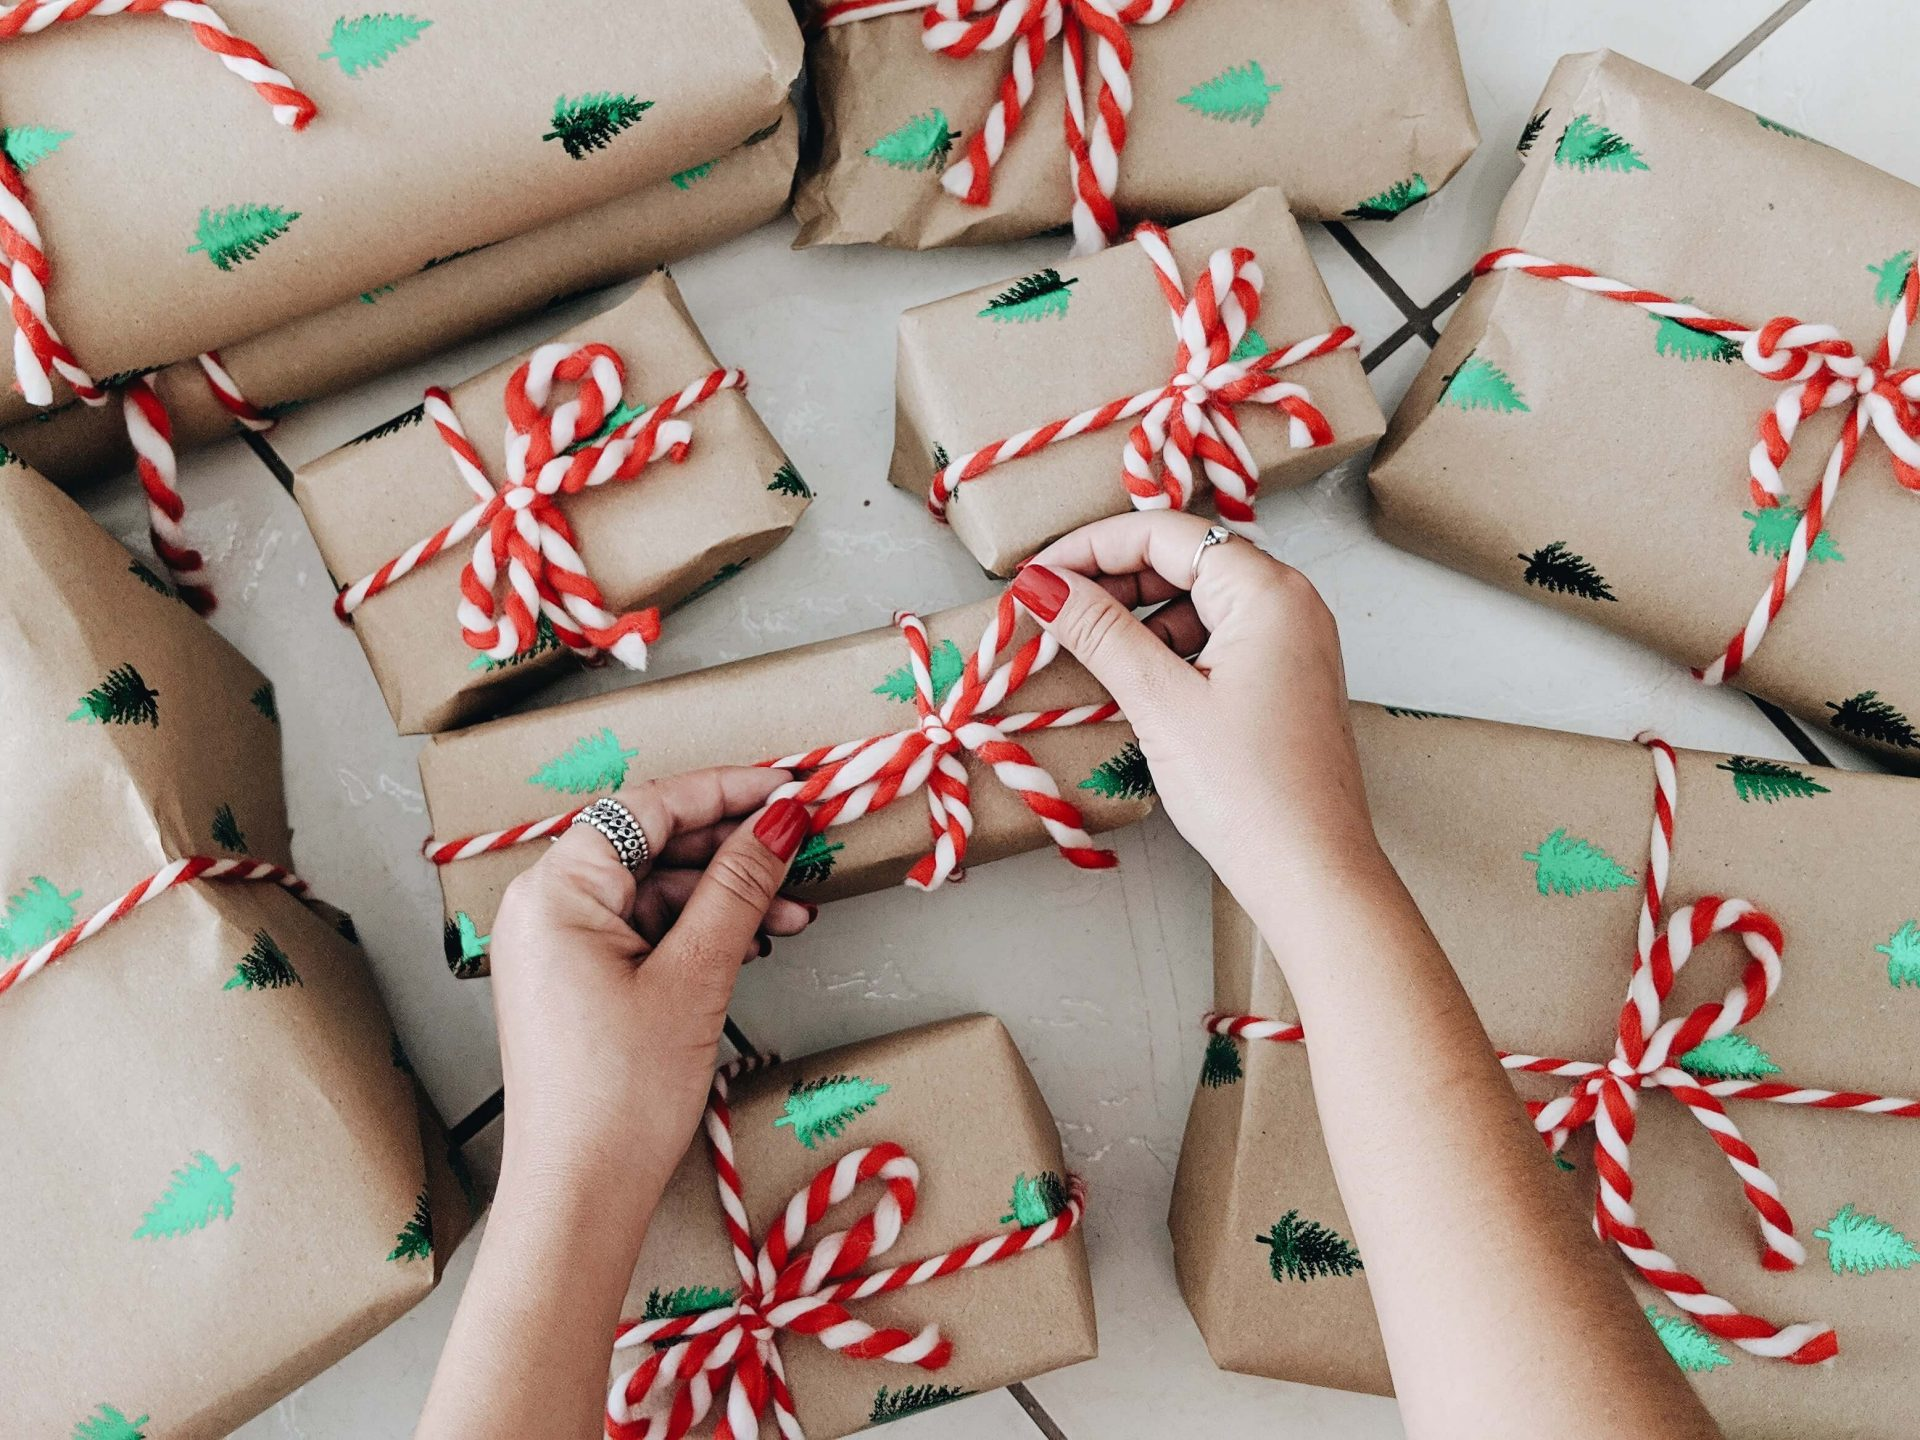 Holiday Gift Guide: 10 Thoughtful (And Unique) Gifts